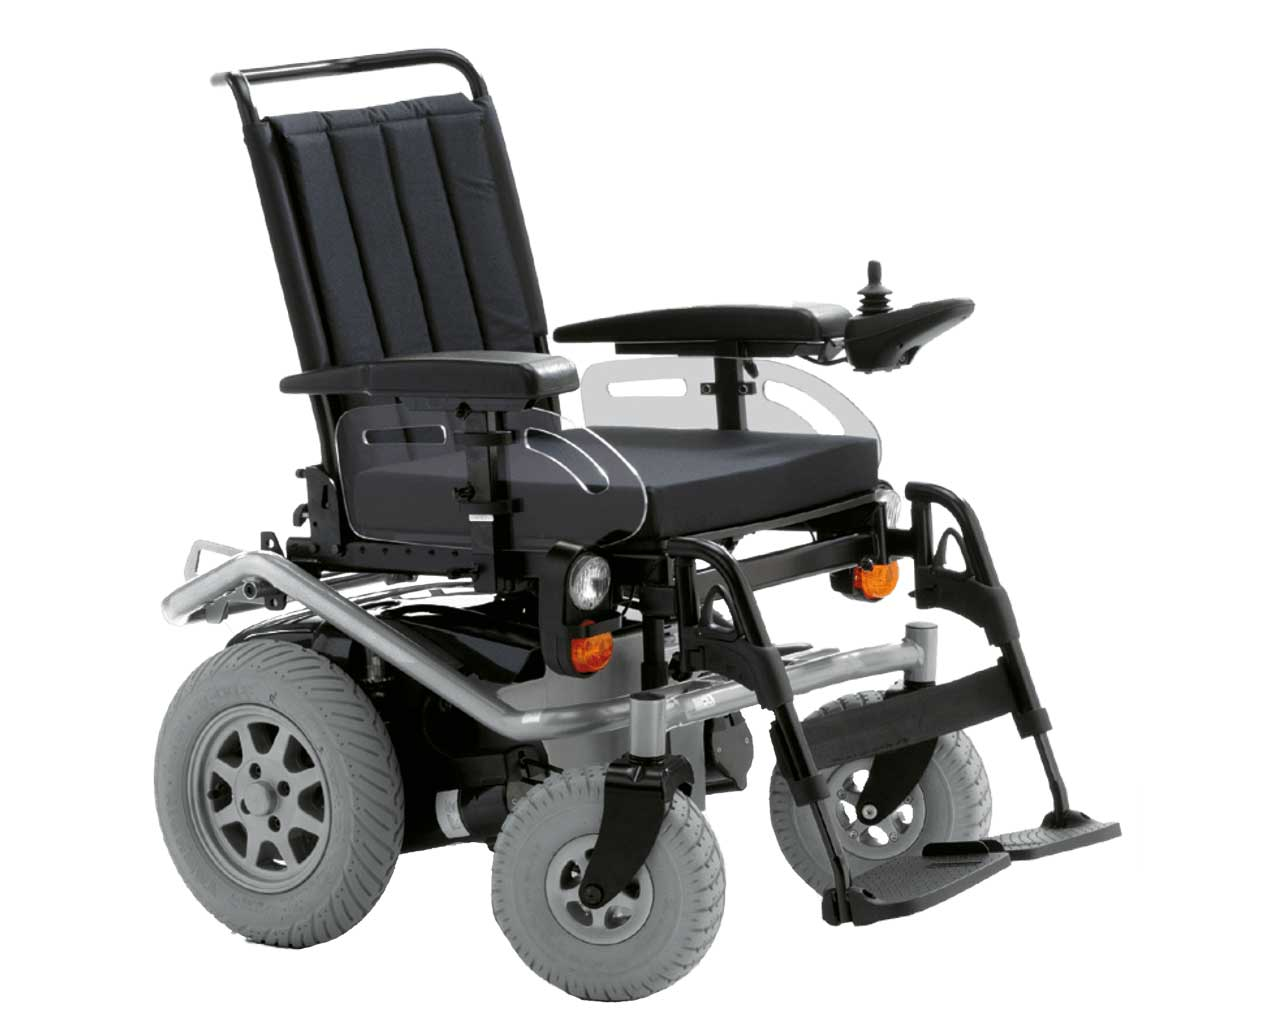 wheelchair evaluation chair covers at target meyra smart powerchair electric for hire or sale